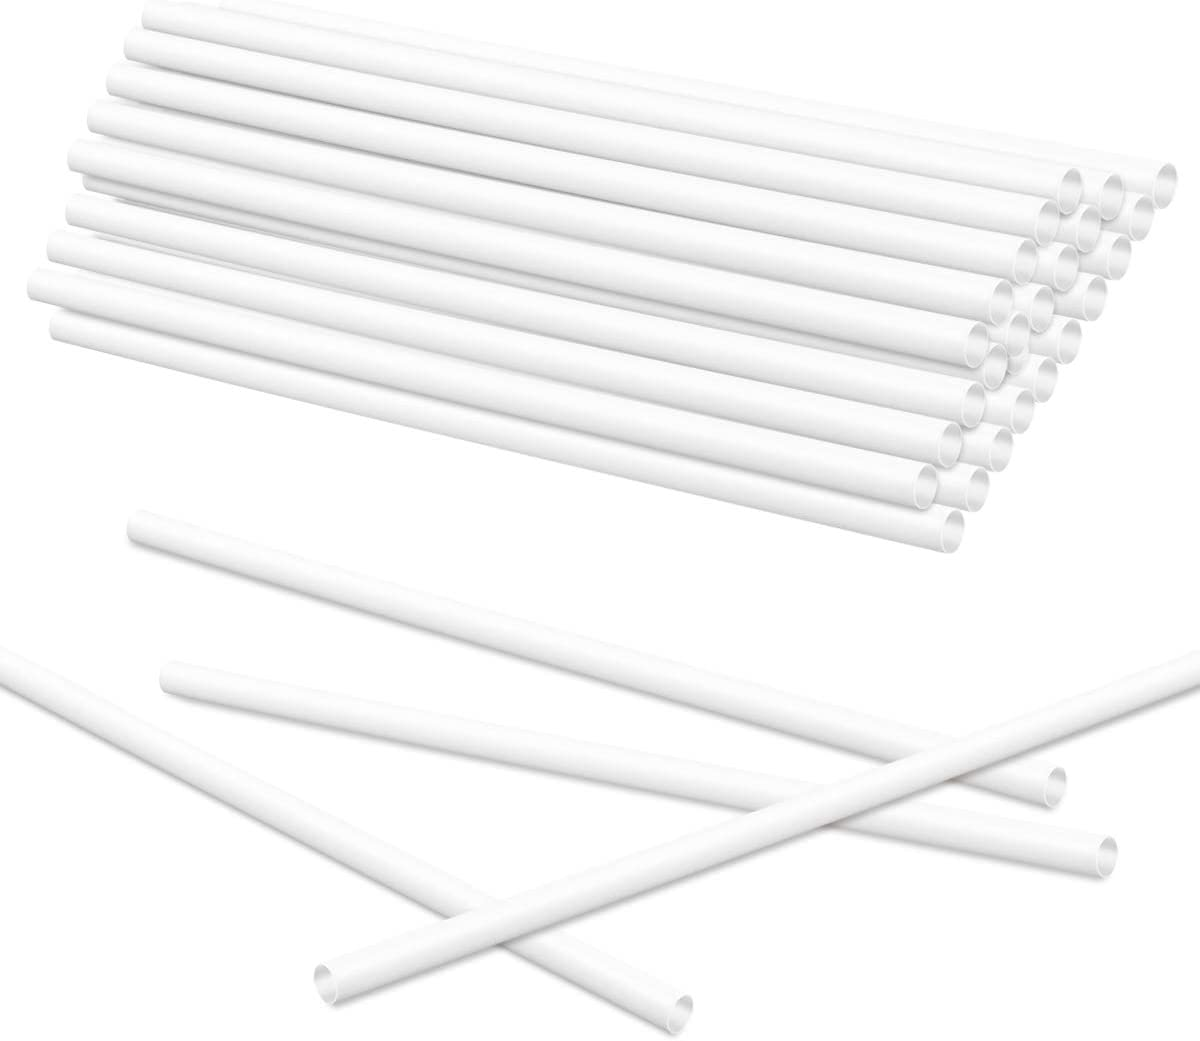 Fireboomoon 36 PCS 12 Inch Plastic White Cake Dowel Rods,Cake Support Rods Straws Sticks for Tiered Cake Construction Stacking and DIY Crafts(0.4